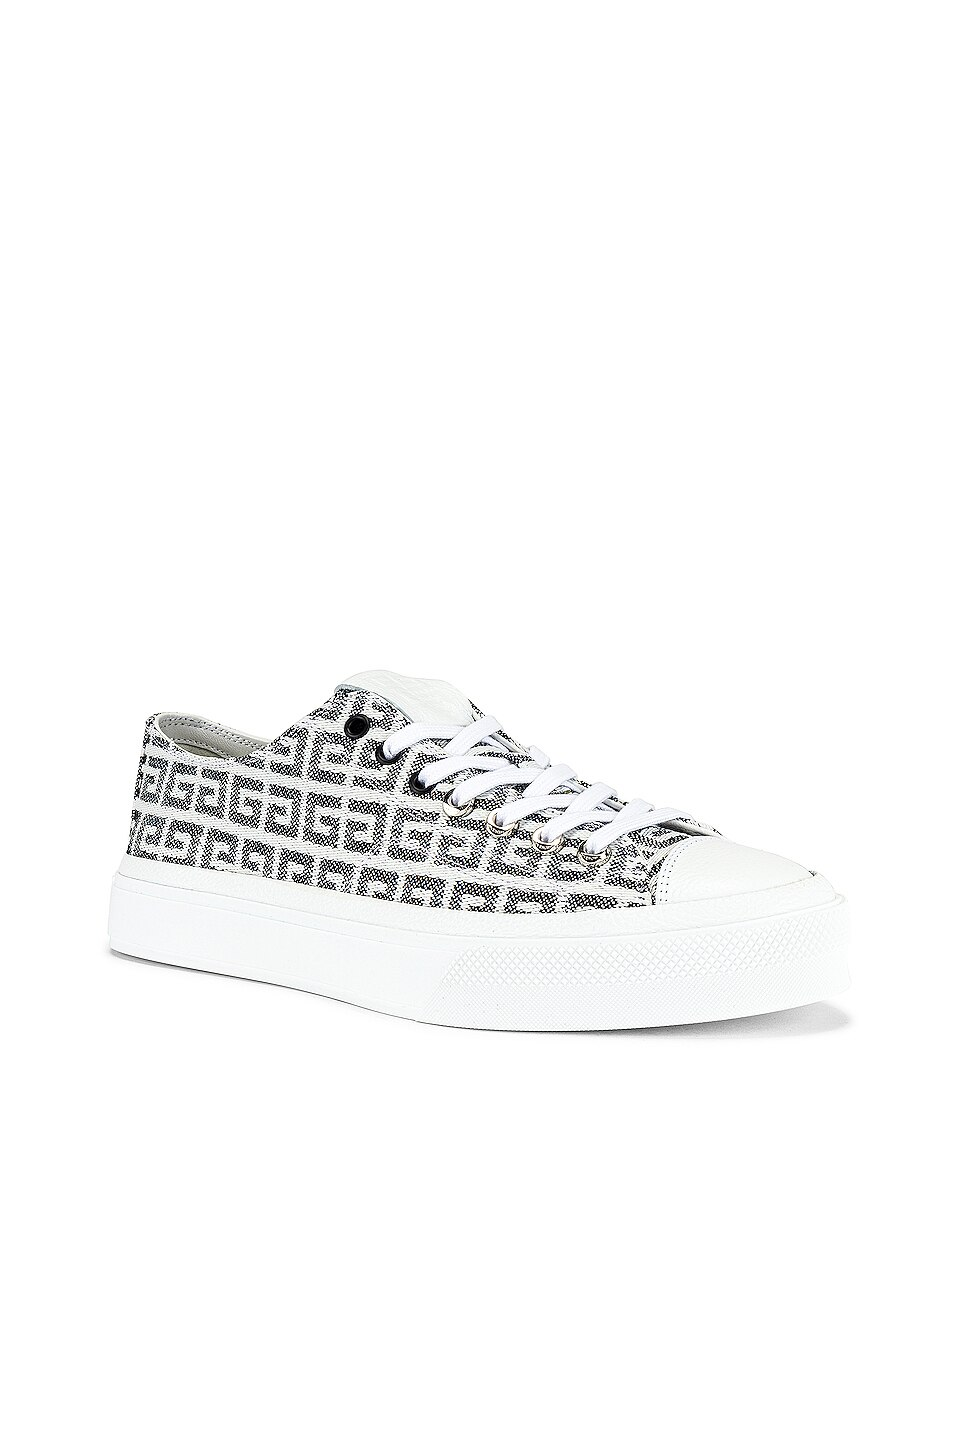 Givenchy City Low 4G Textured Jacquard